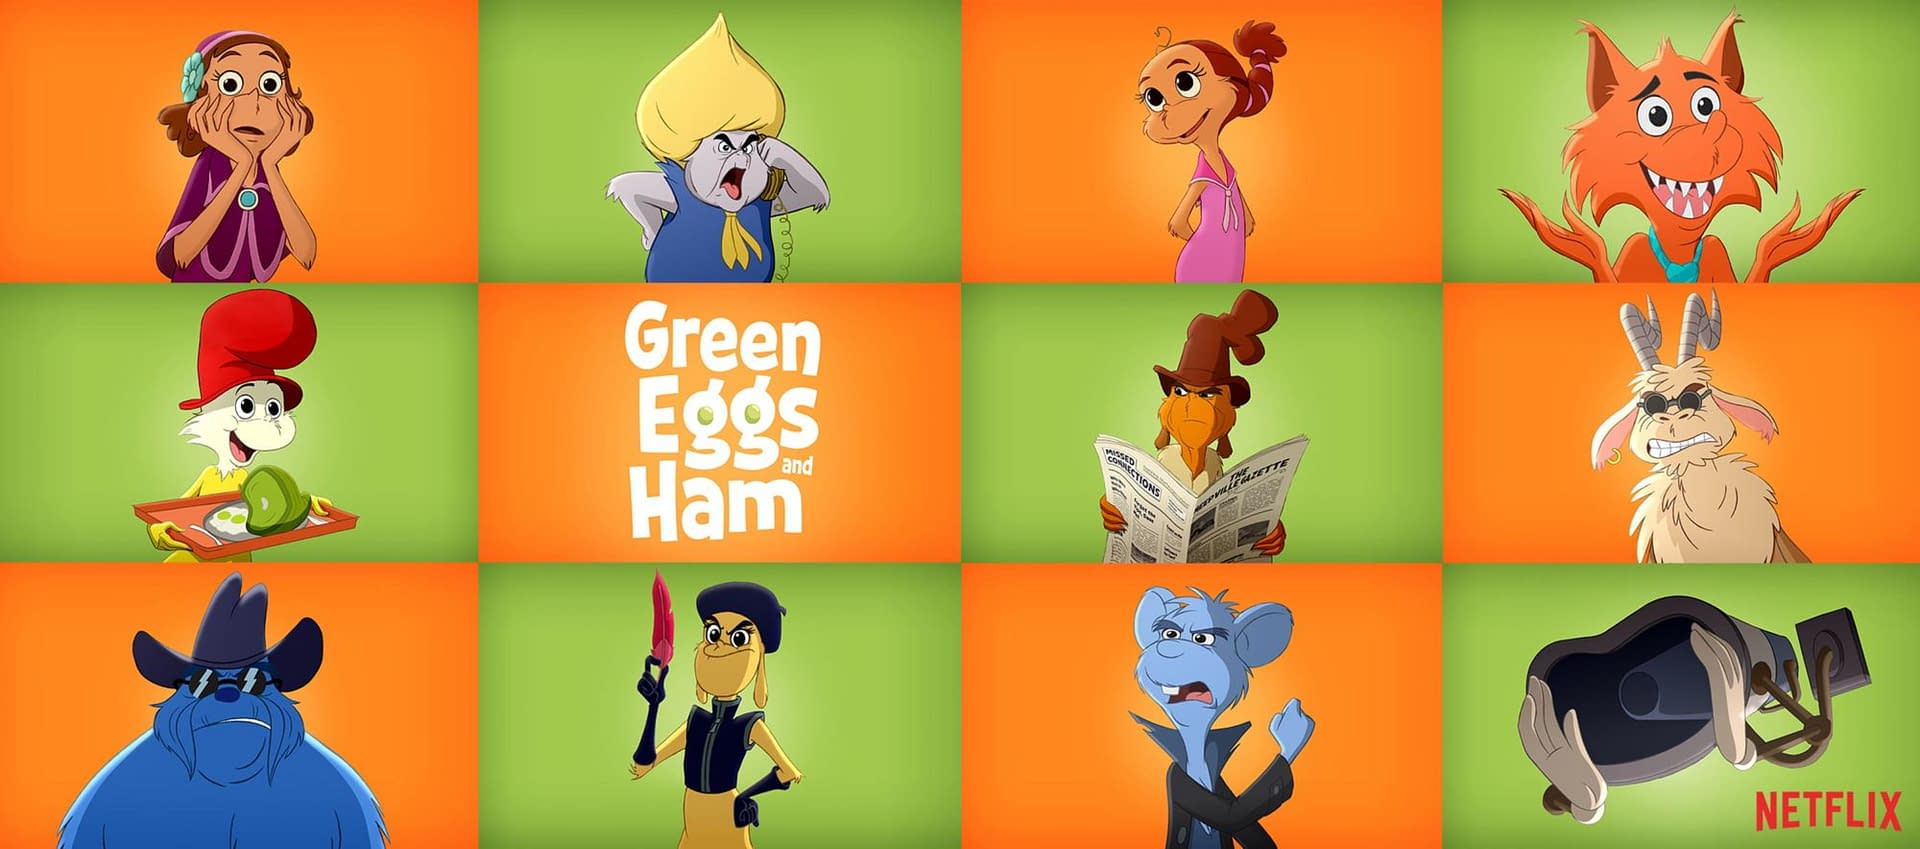 'Green Eggs and Ham': Netflix's Animated Series Serves Up Teaser, Voice Cast